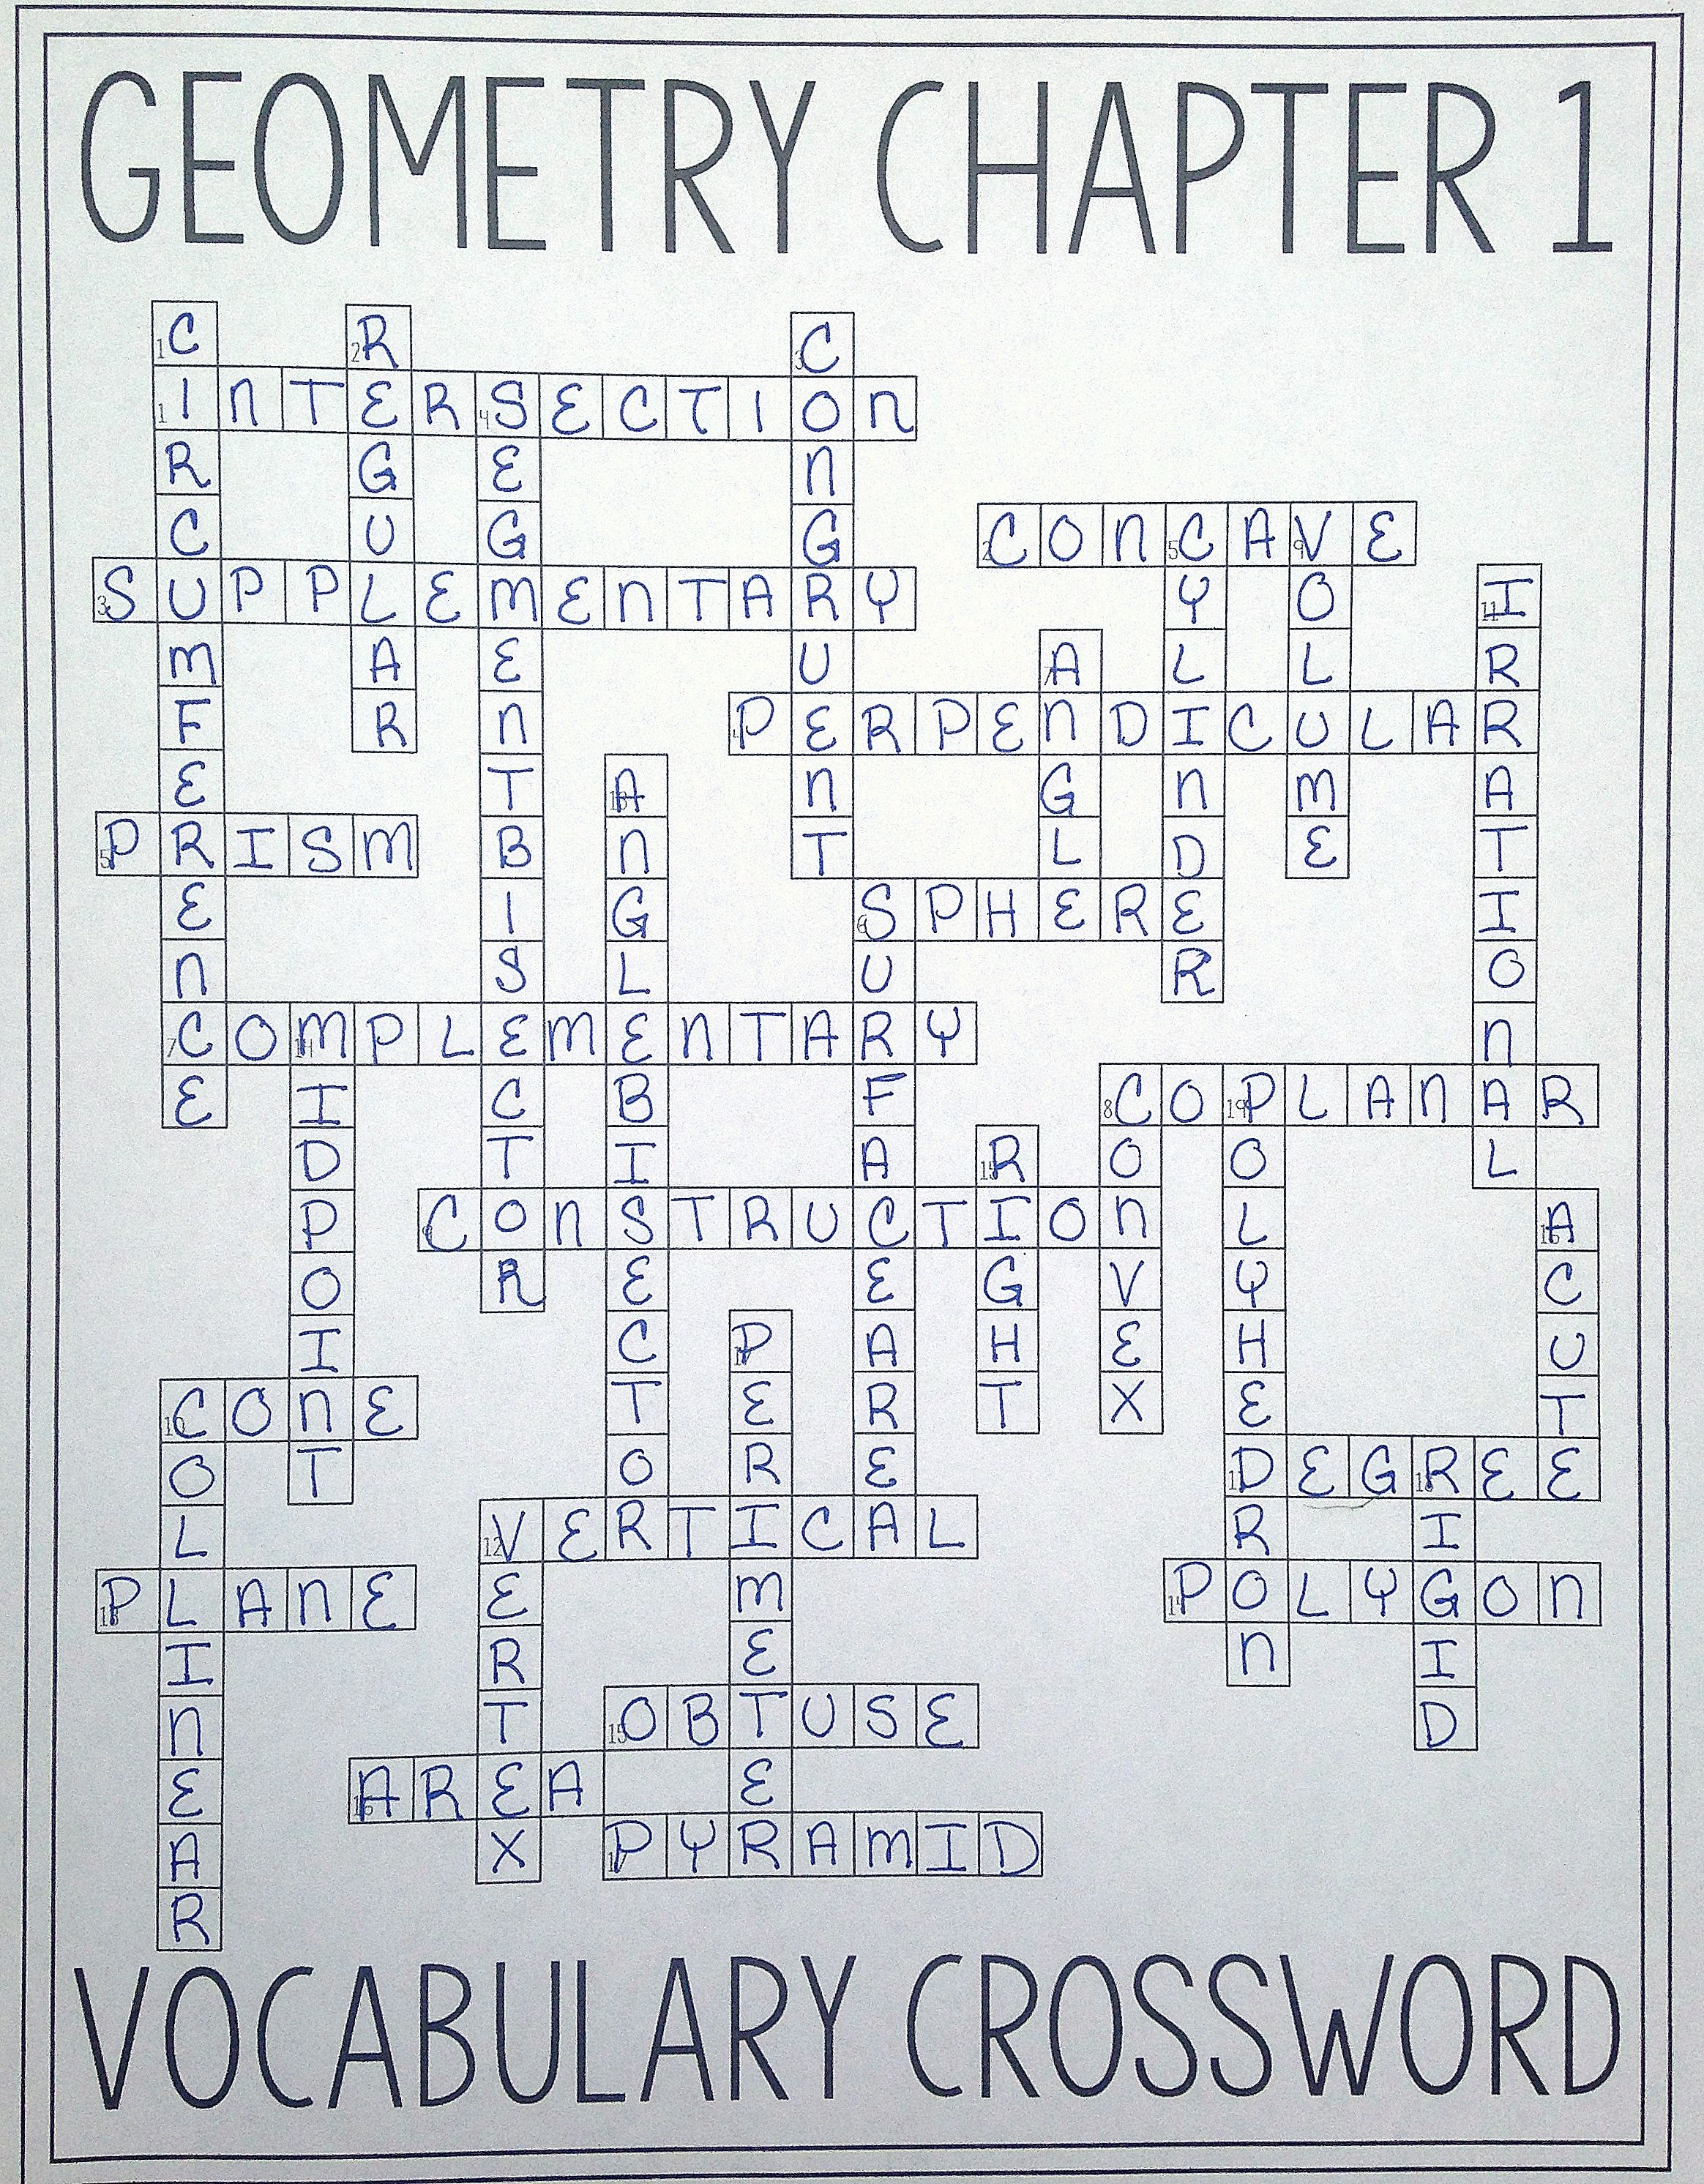 Geometry Chapter 1 Vocabulary Crossword